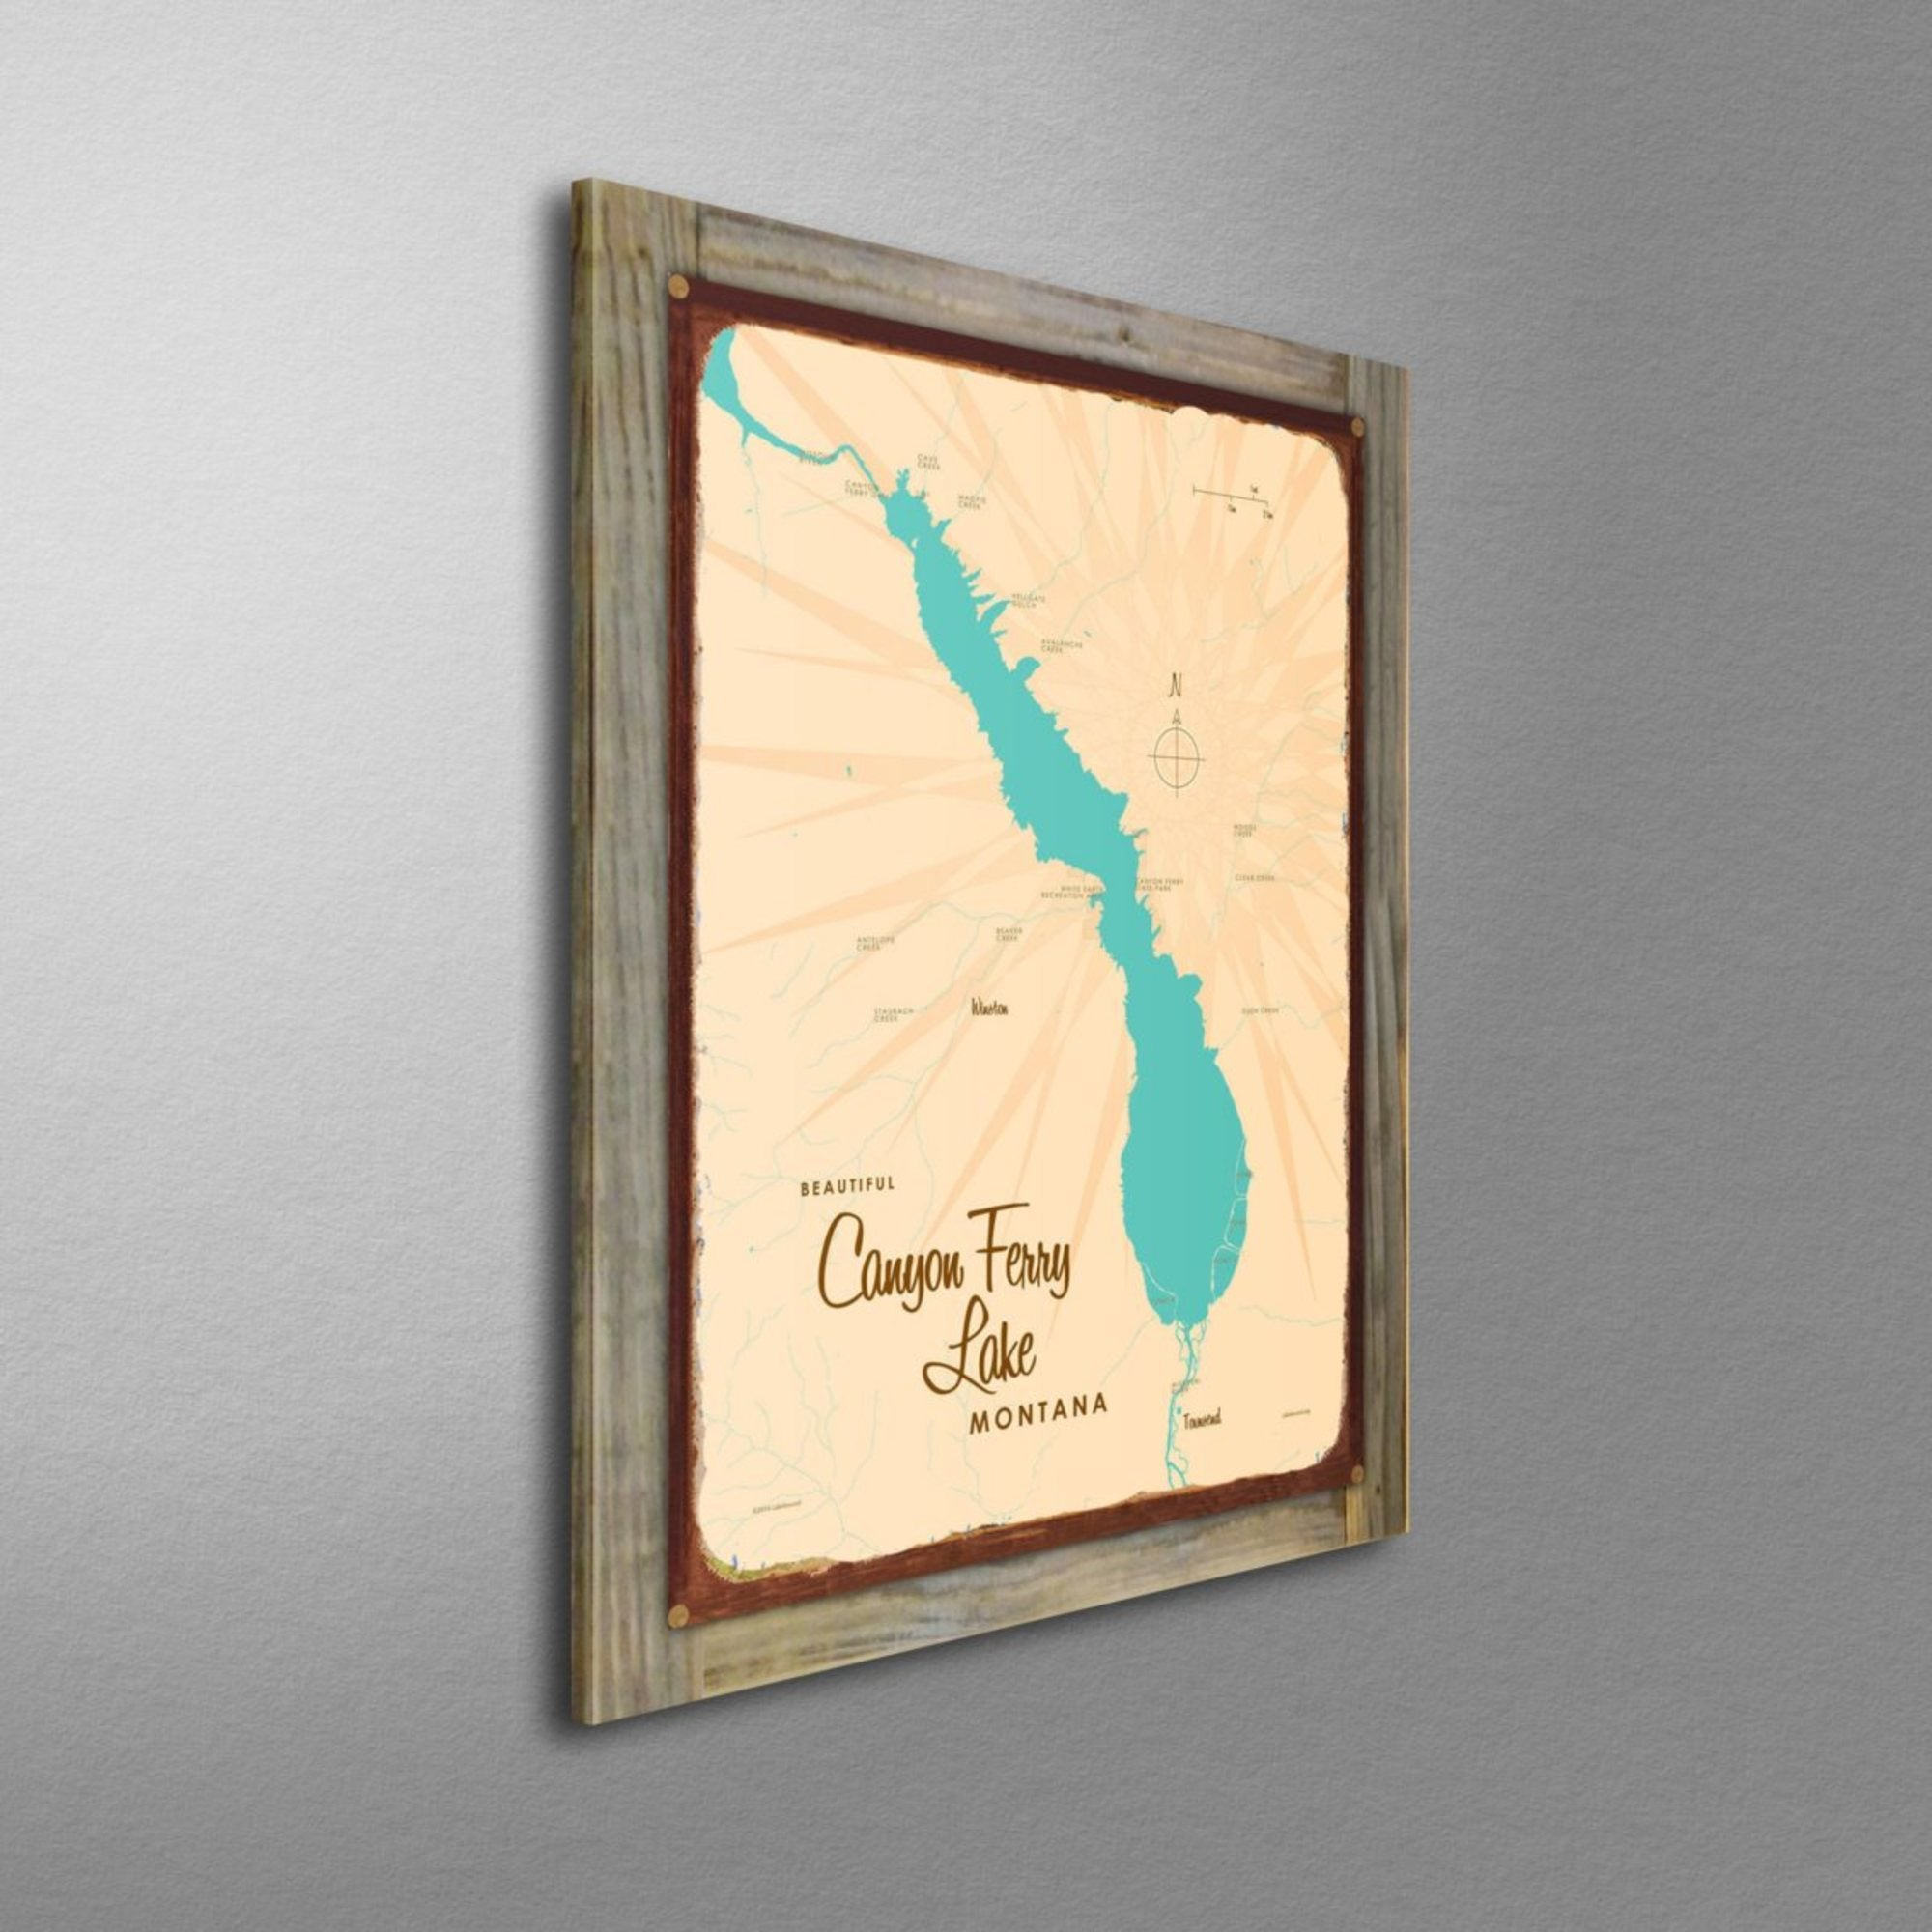 Canyon Ferry Lake Montana, Wood-Mounted Rustic Metal Sign Map Art